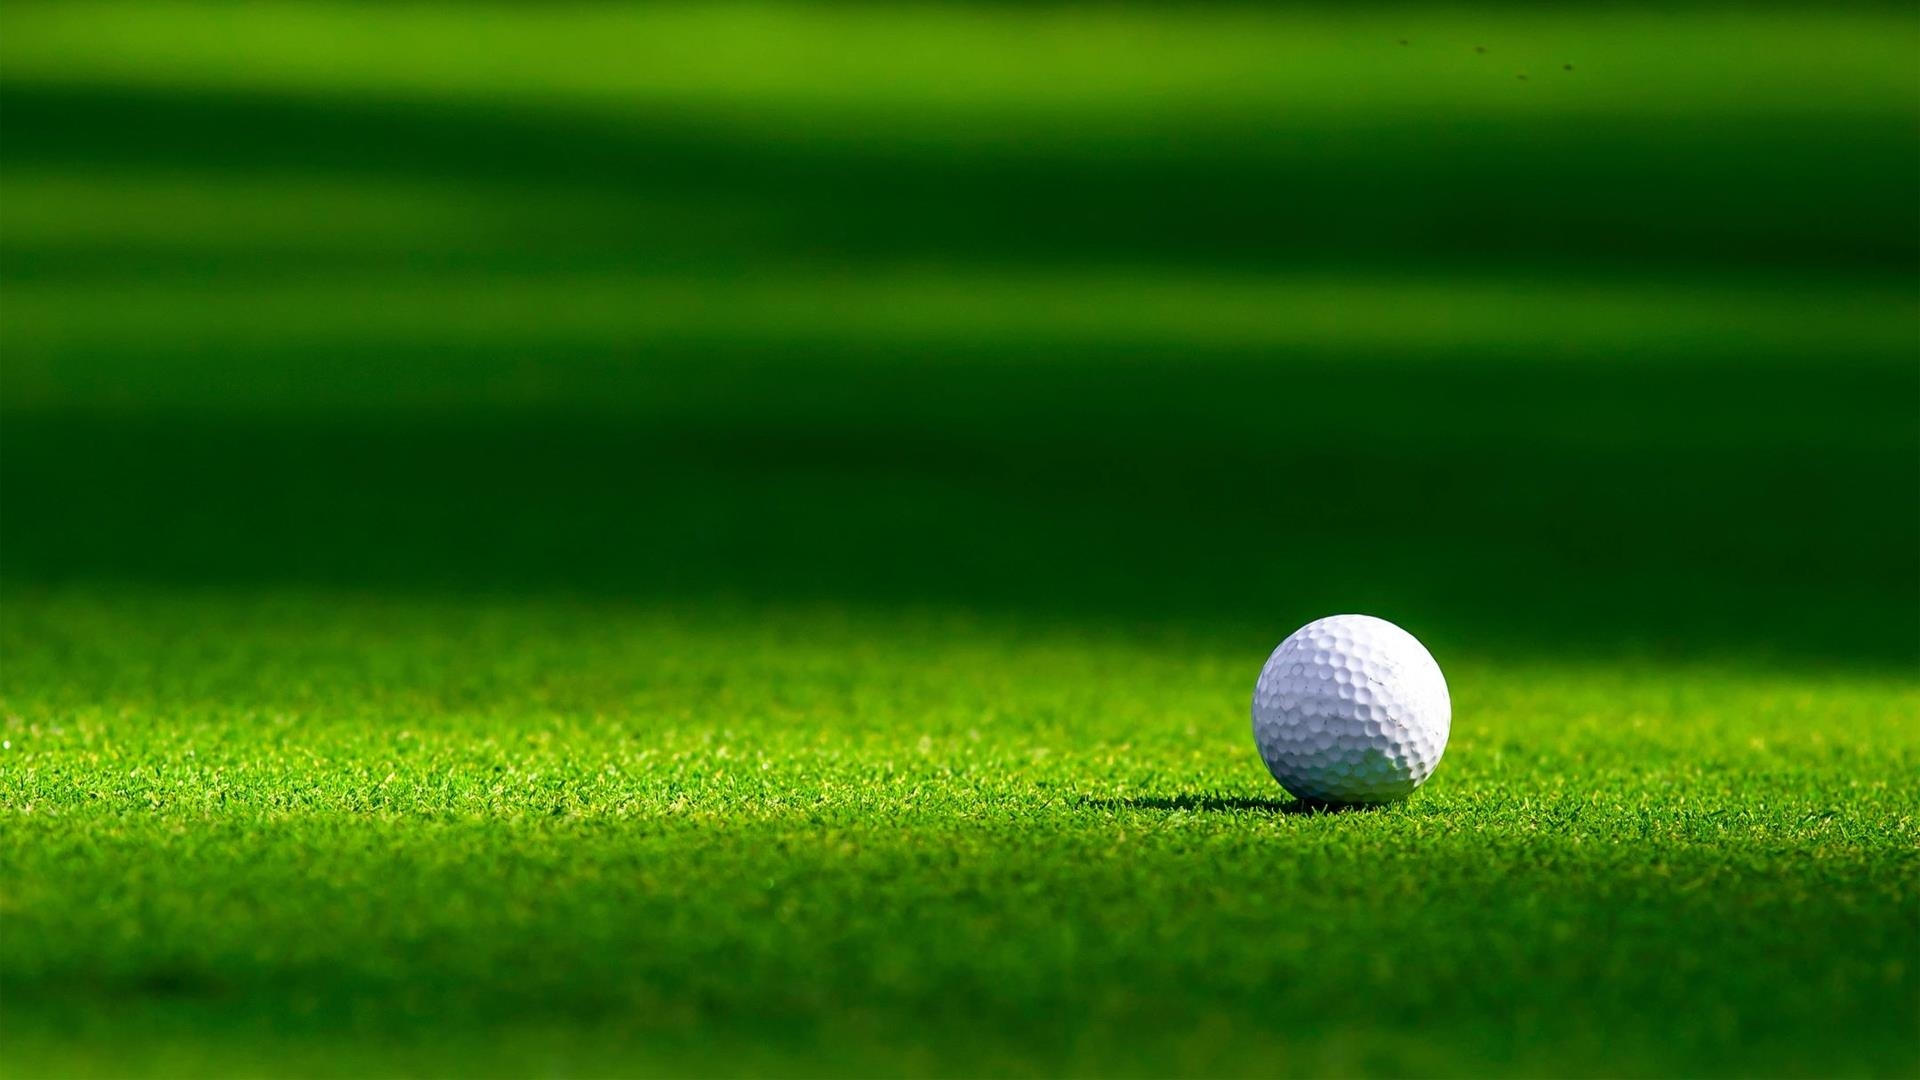 2nd Annual Coats For KidsGolf Outing - October 21st, 2019 -- 10AM - 7PMWhite Beeches Golf Club, Haworth, NJ